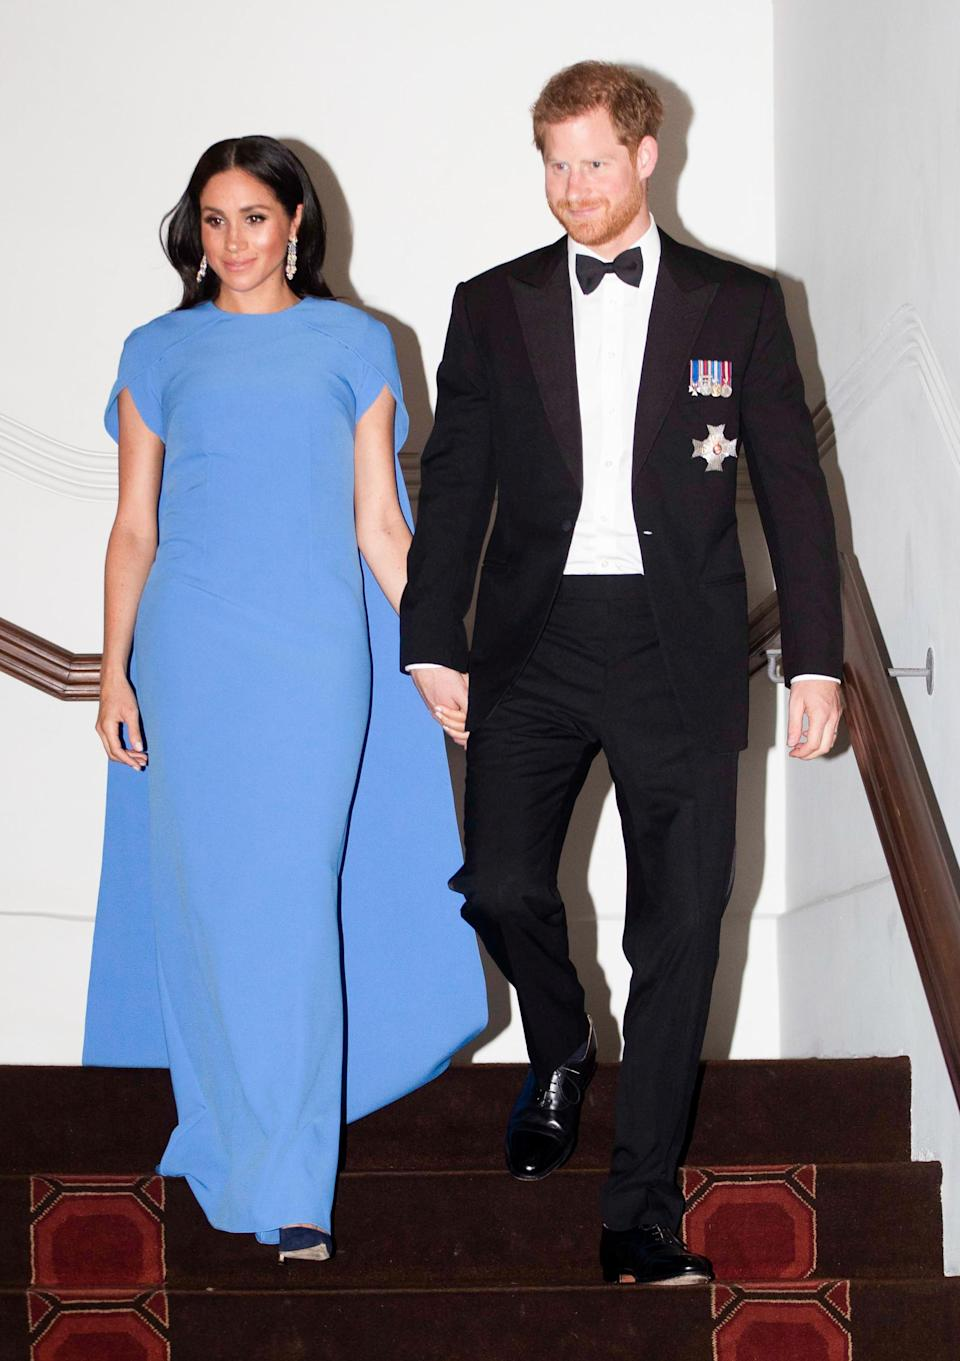 """<p>The Duchess of Sussex showcased her blossoming baby bump on day seven of the couple's royal tour in a £1,095 dress by <a rel=""""nofollow noopener"""" href=""""https://www.safiyaa.com/collections/dresses/products/ginkgo-cape-dress"""" target=""""_blank"""" data-ylk=""""slk:Safiyaa"""" class=""""link rapid-noclick-resp"""">Safiyaa</a>. <em>[Photo: Getty]</em> </p>"""